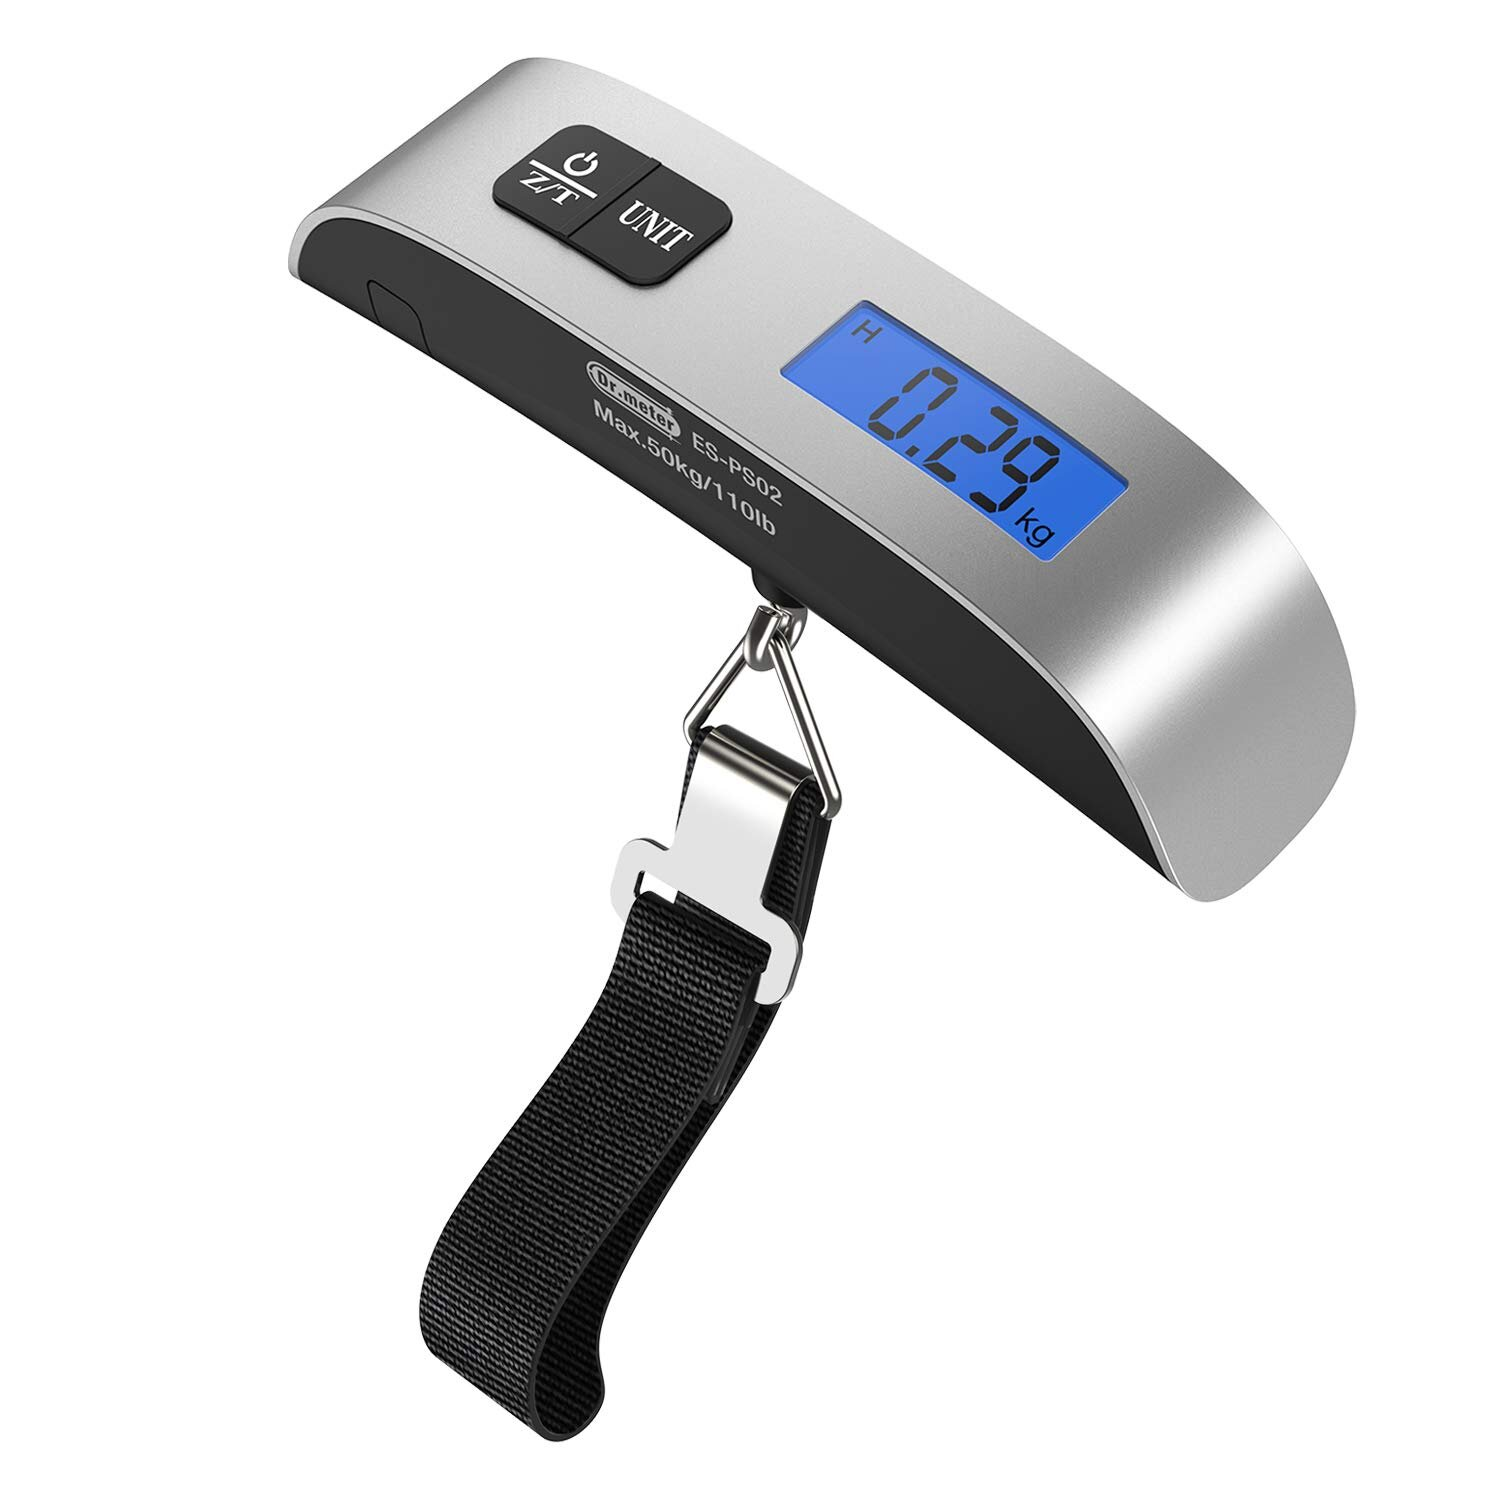 Dr. Meter Portable Luggage Scale